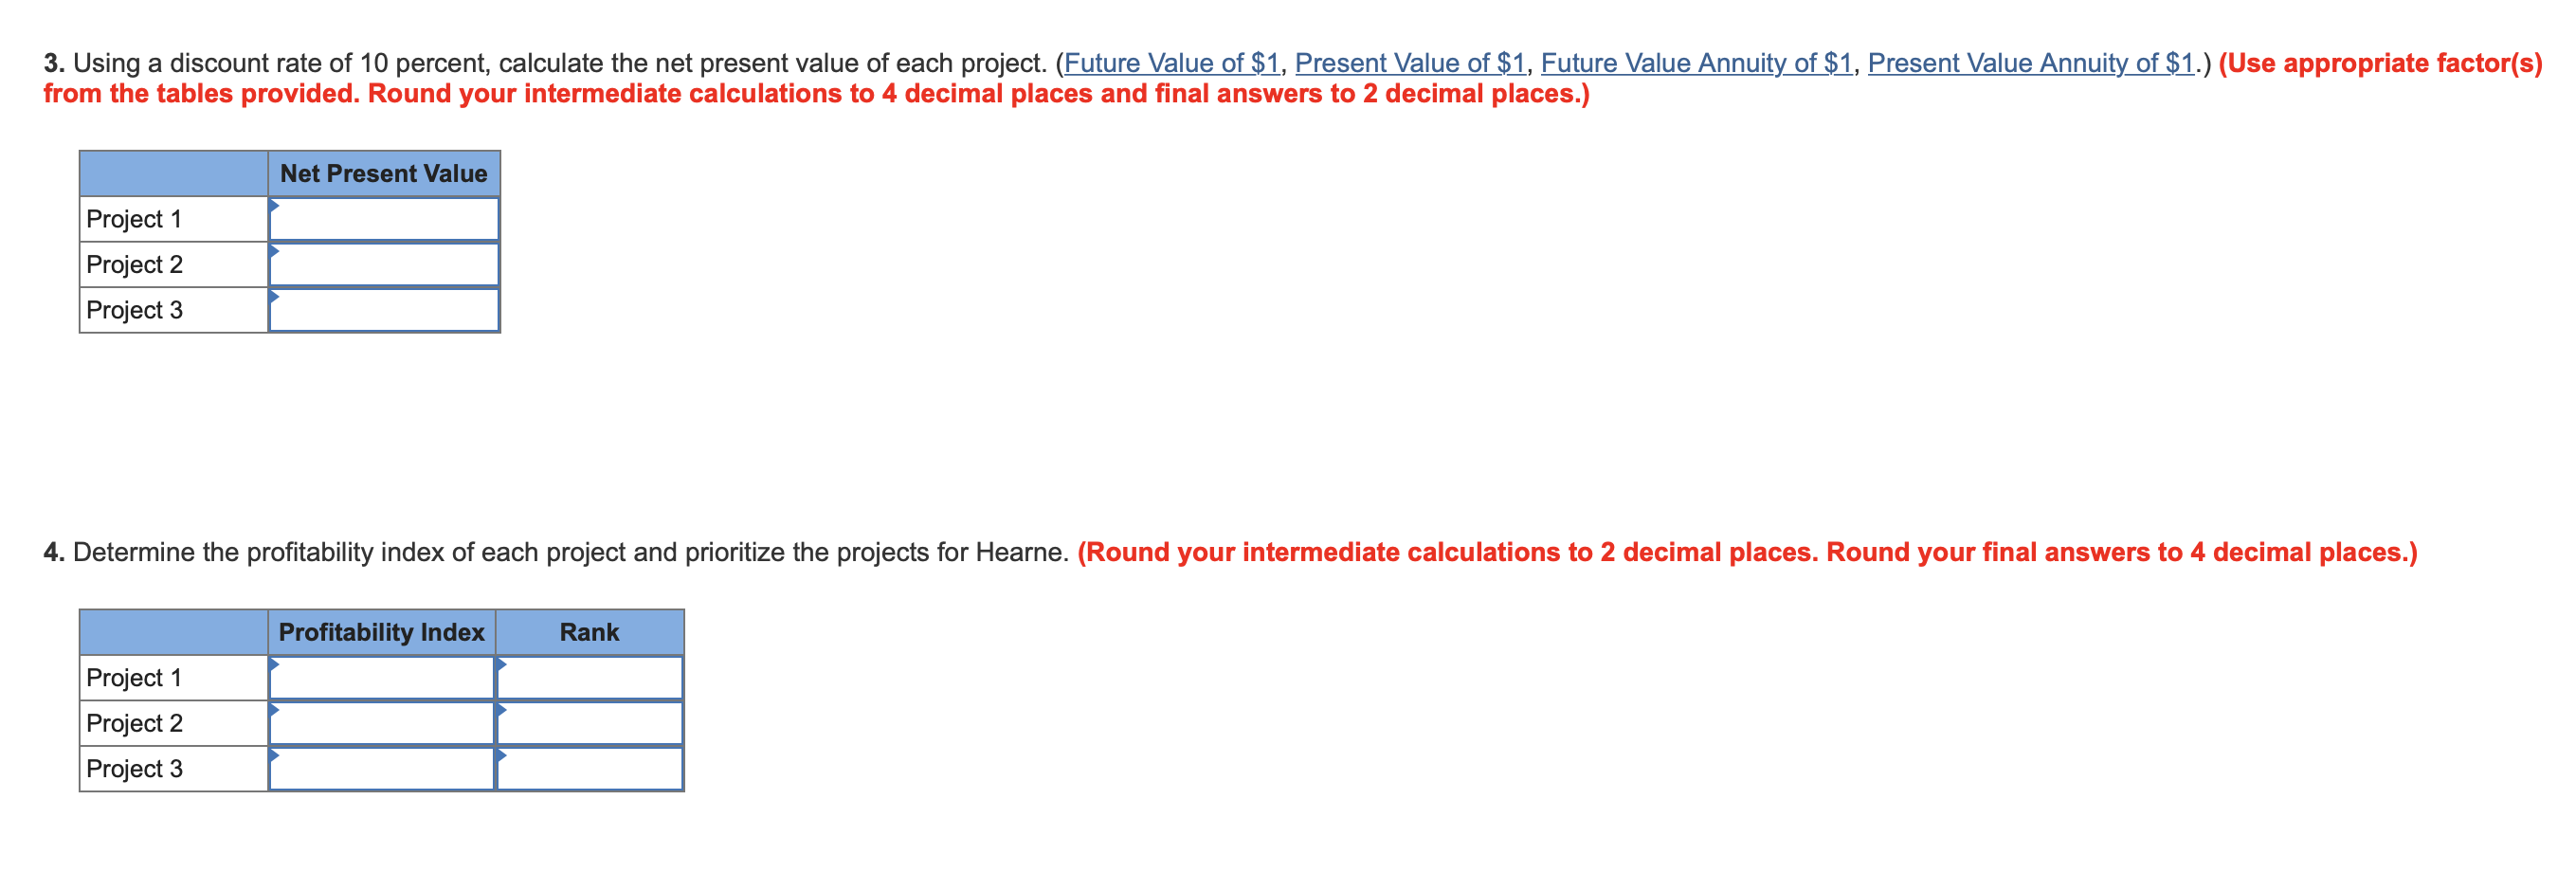 3. Using a discount rate of 10 percent, calculate the net present value of each project. (Future Value of $1, Present Value of $1, Future Value Annuity of $1, Present Value Annuity of $1.) (Use appropriate factor(s) from the tables provided. Round your intermediate calculations to 4 decimal places and final answers to 2 decimal places.) Net Present Value Project 1 Project 2 Project 3 4. Determine the profitability index of each project and prioritize the projects for Hearne. (Round your intermediate calculations to 2 decimal places. Round your final answers to 4 decimal places.) Profitability Index Rank Project 1 Project 2 Project 3